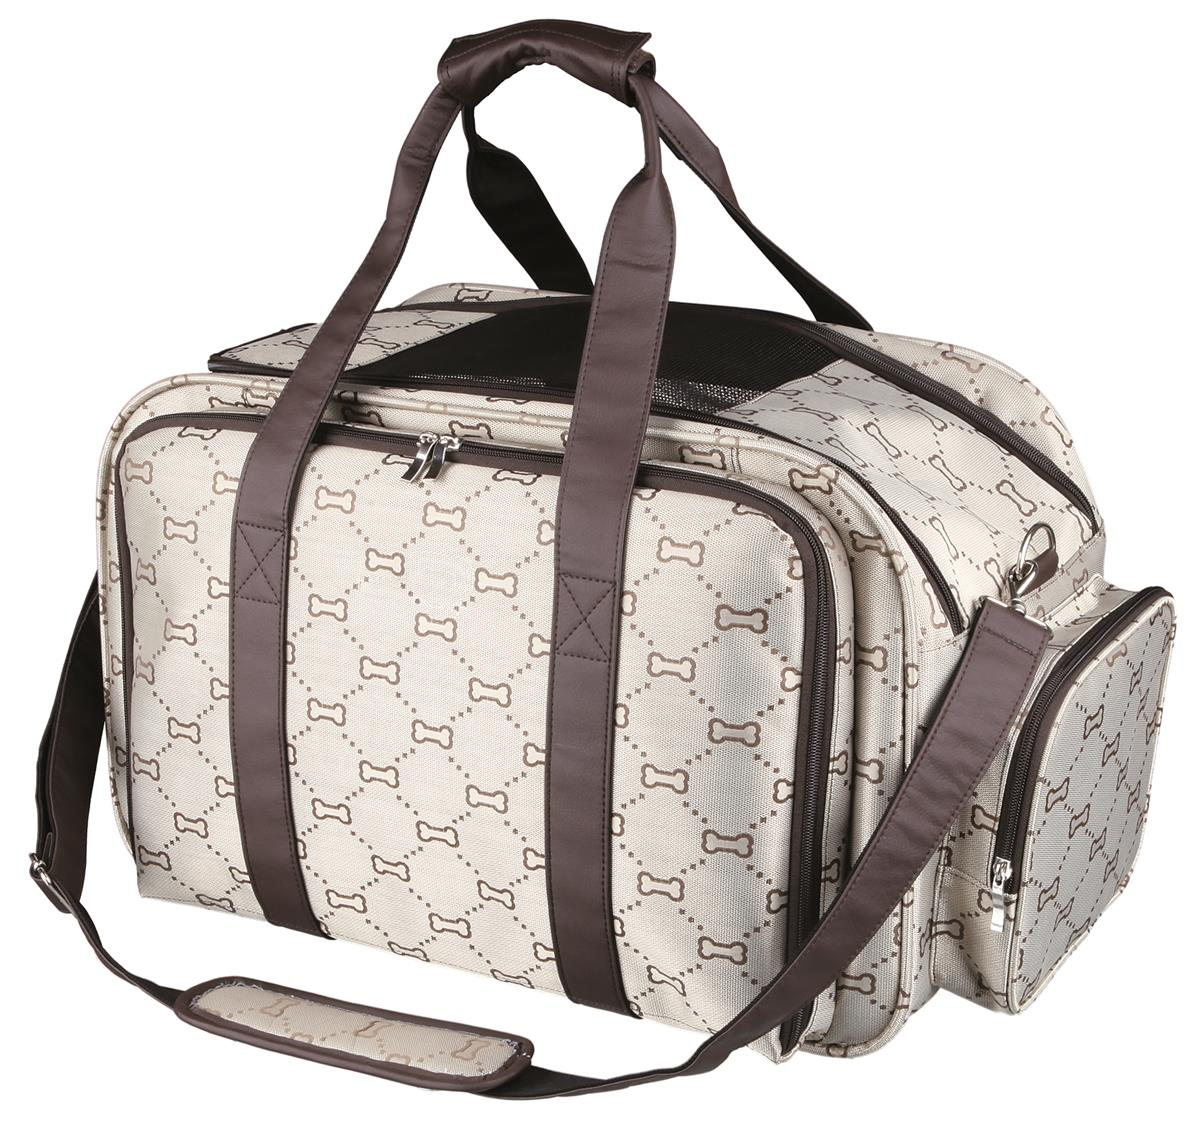 Transportbag Maxima 28903 Polyester Beige/Brun 54x33x32cm Max 8kg